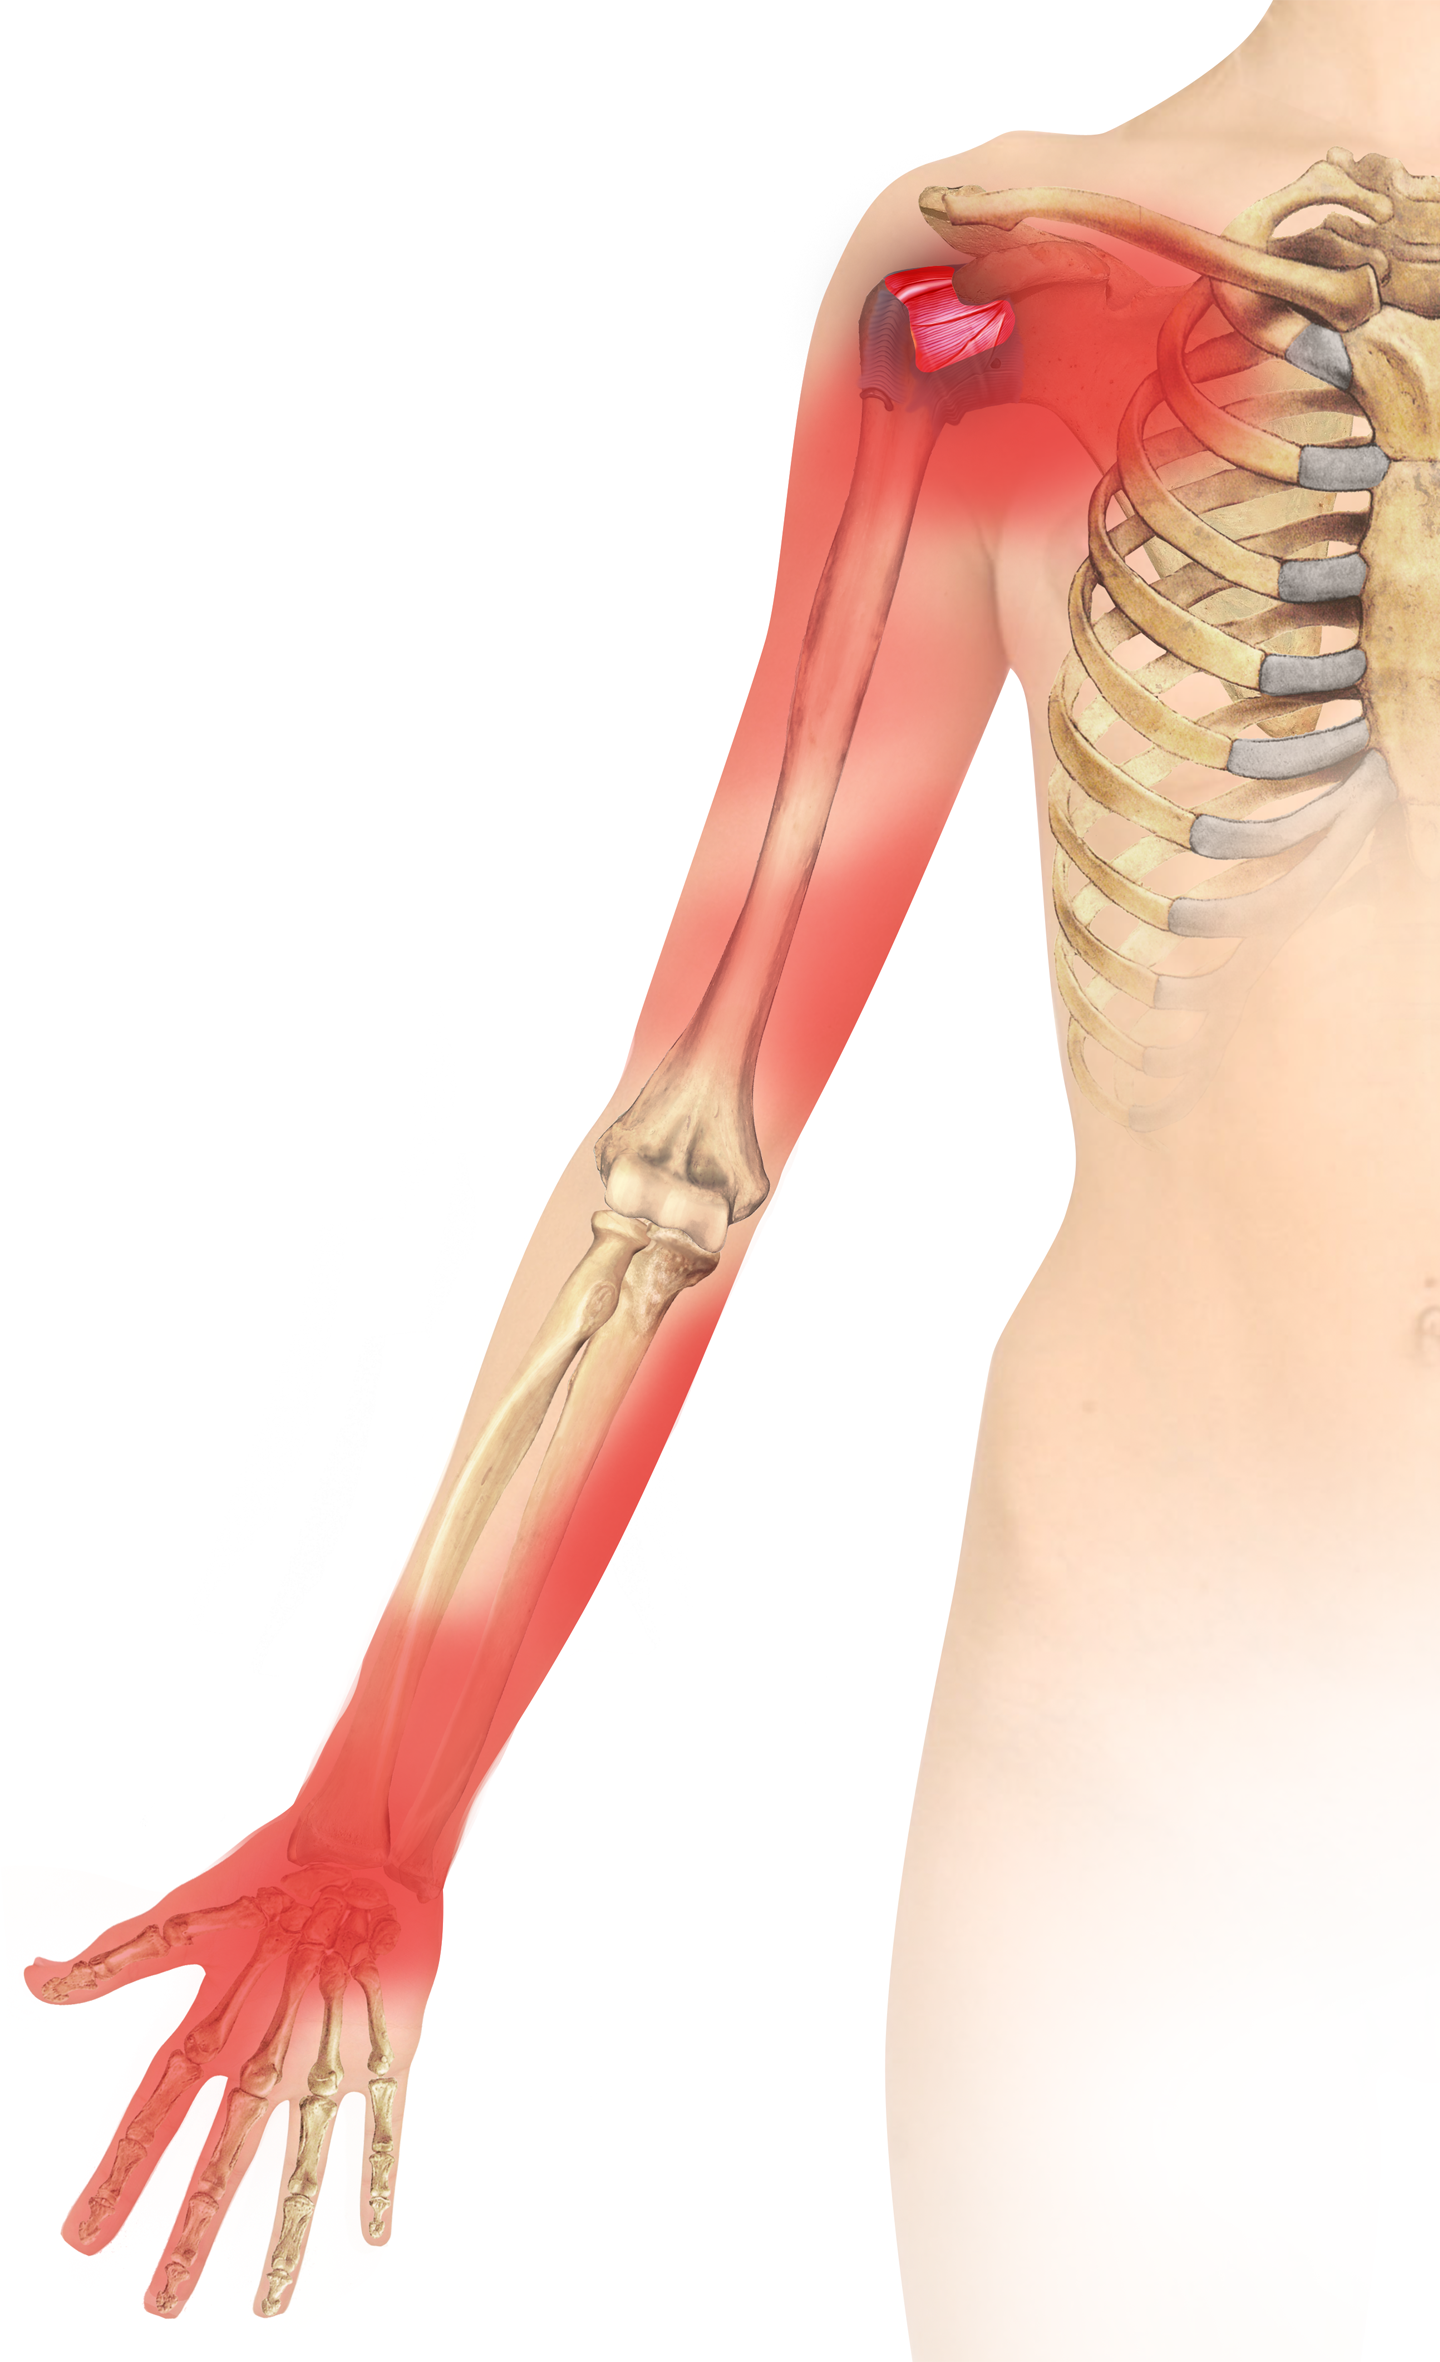 External rotation of the glenohumeral joint: Ligament restraints and ...